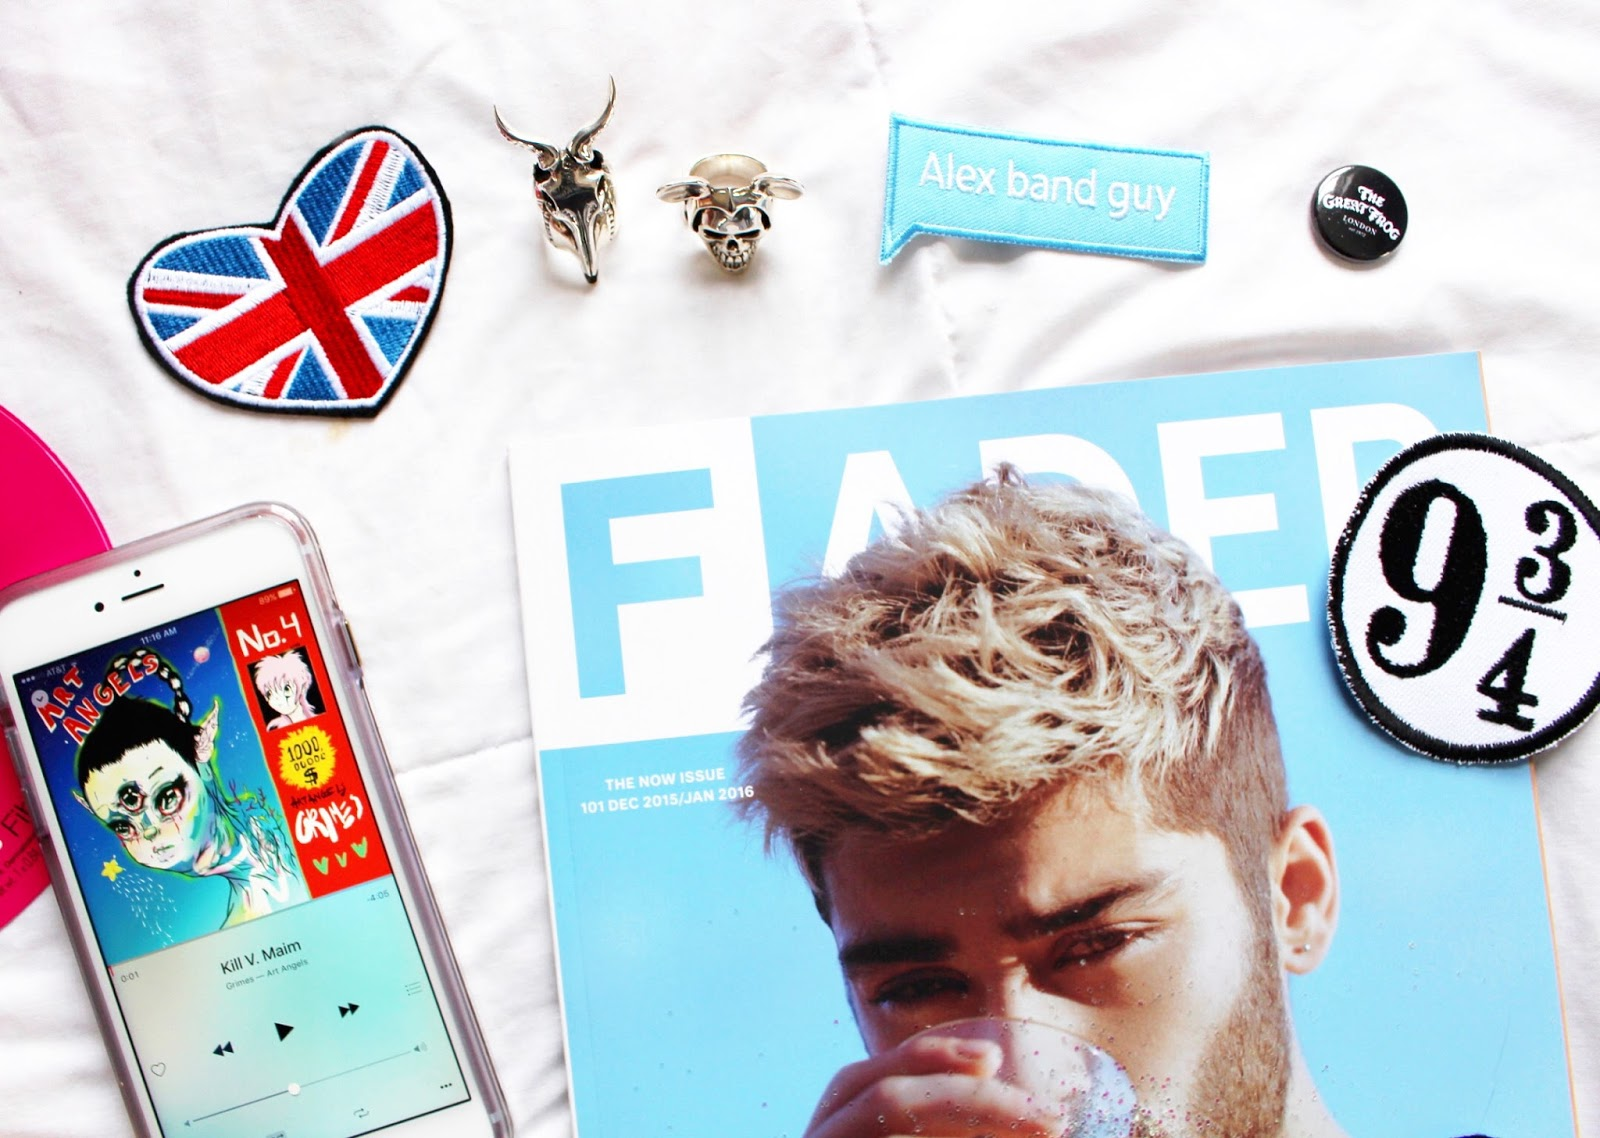 sephora rose sheet mask, zayn malik the fader, grimes art angels, great frog london michael rodent and small kudu rings